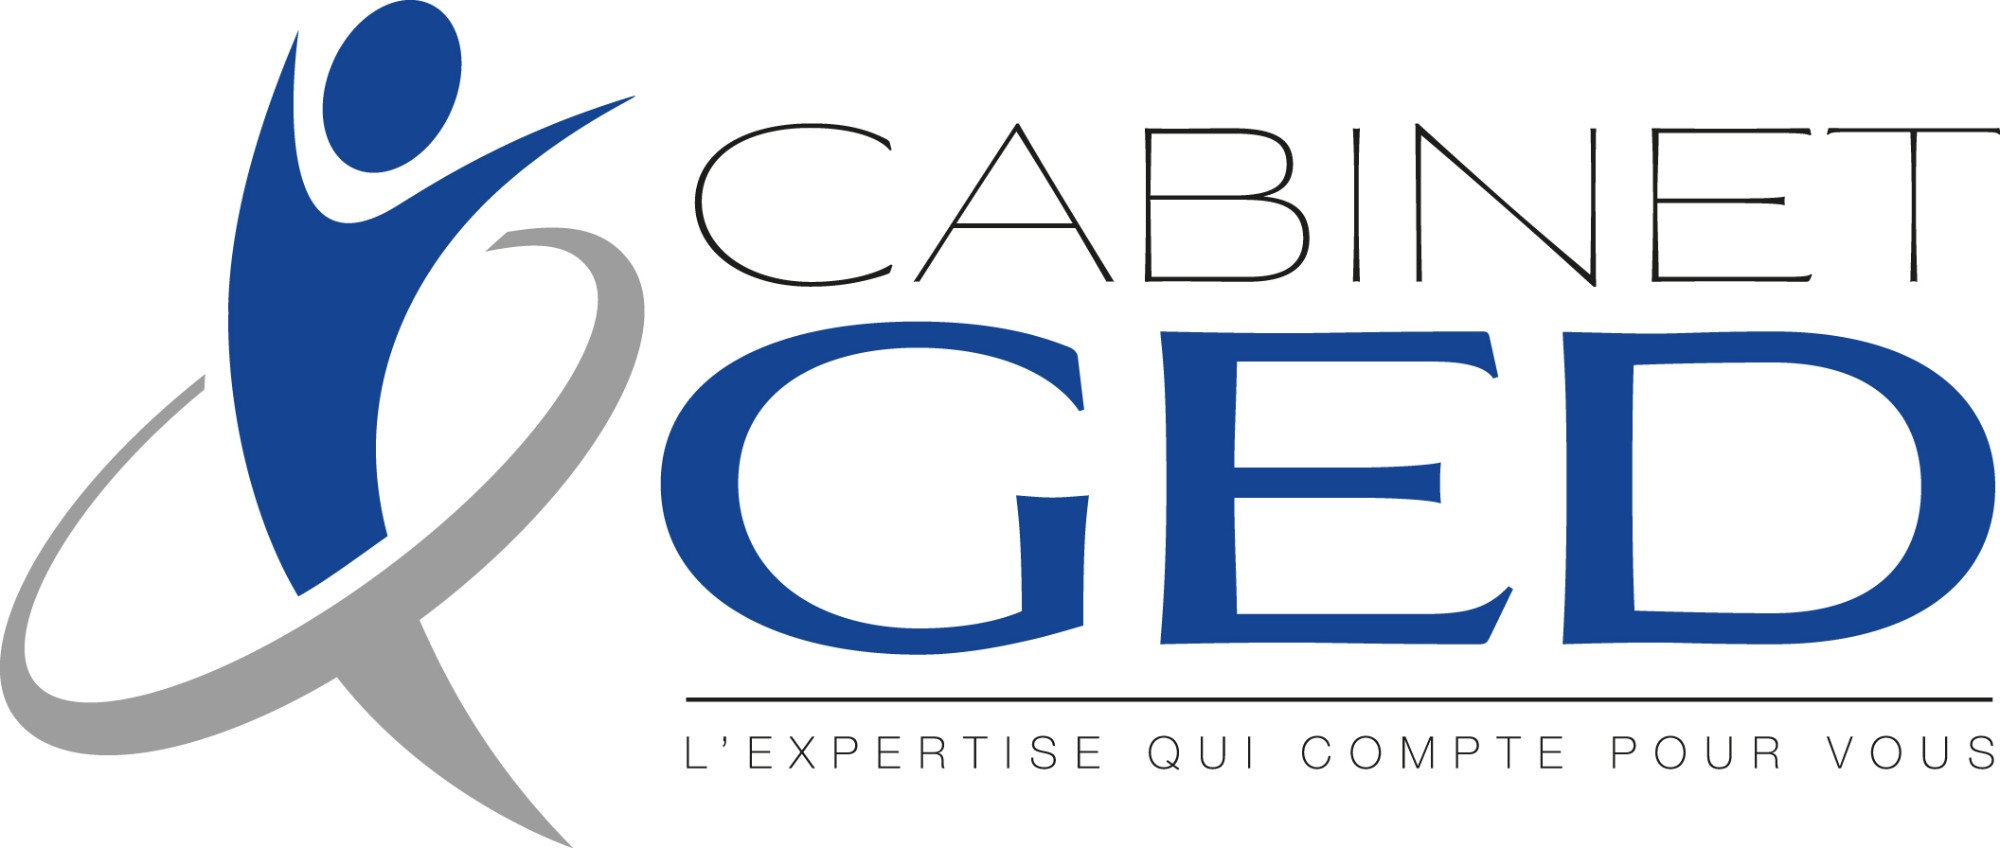 CABINET GED